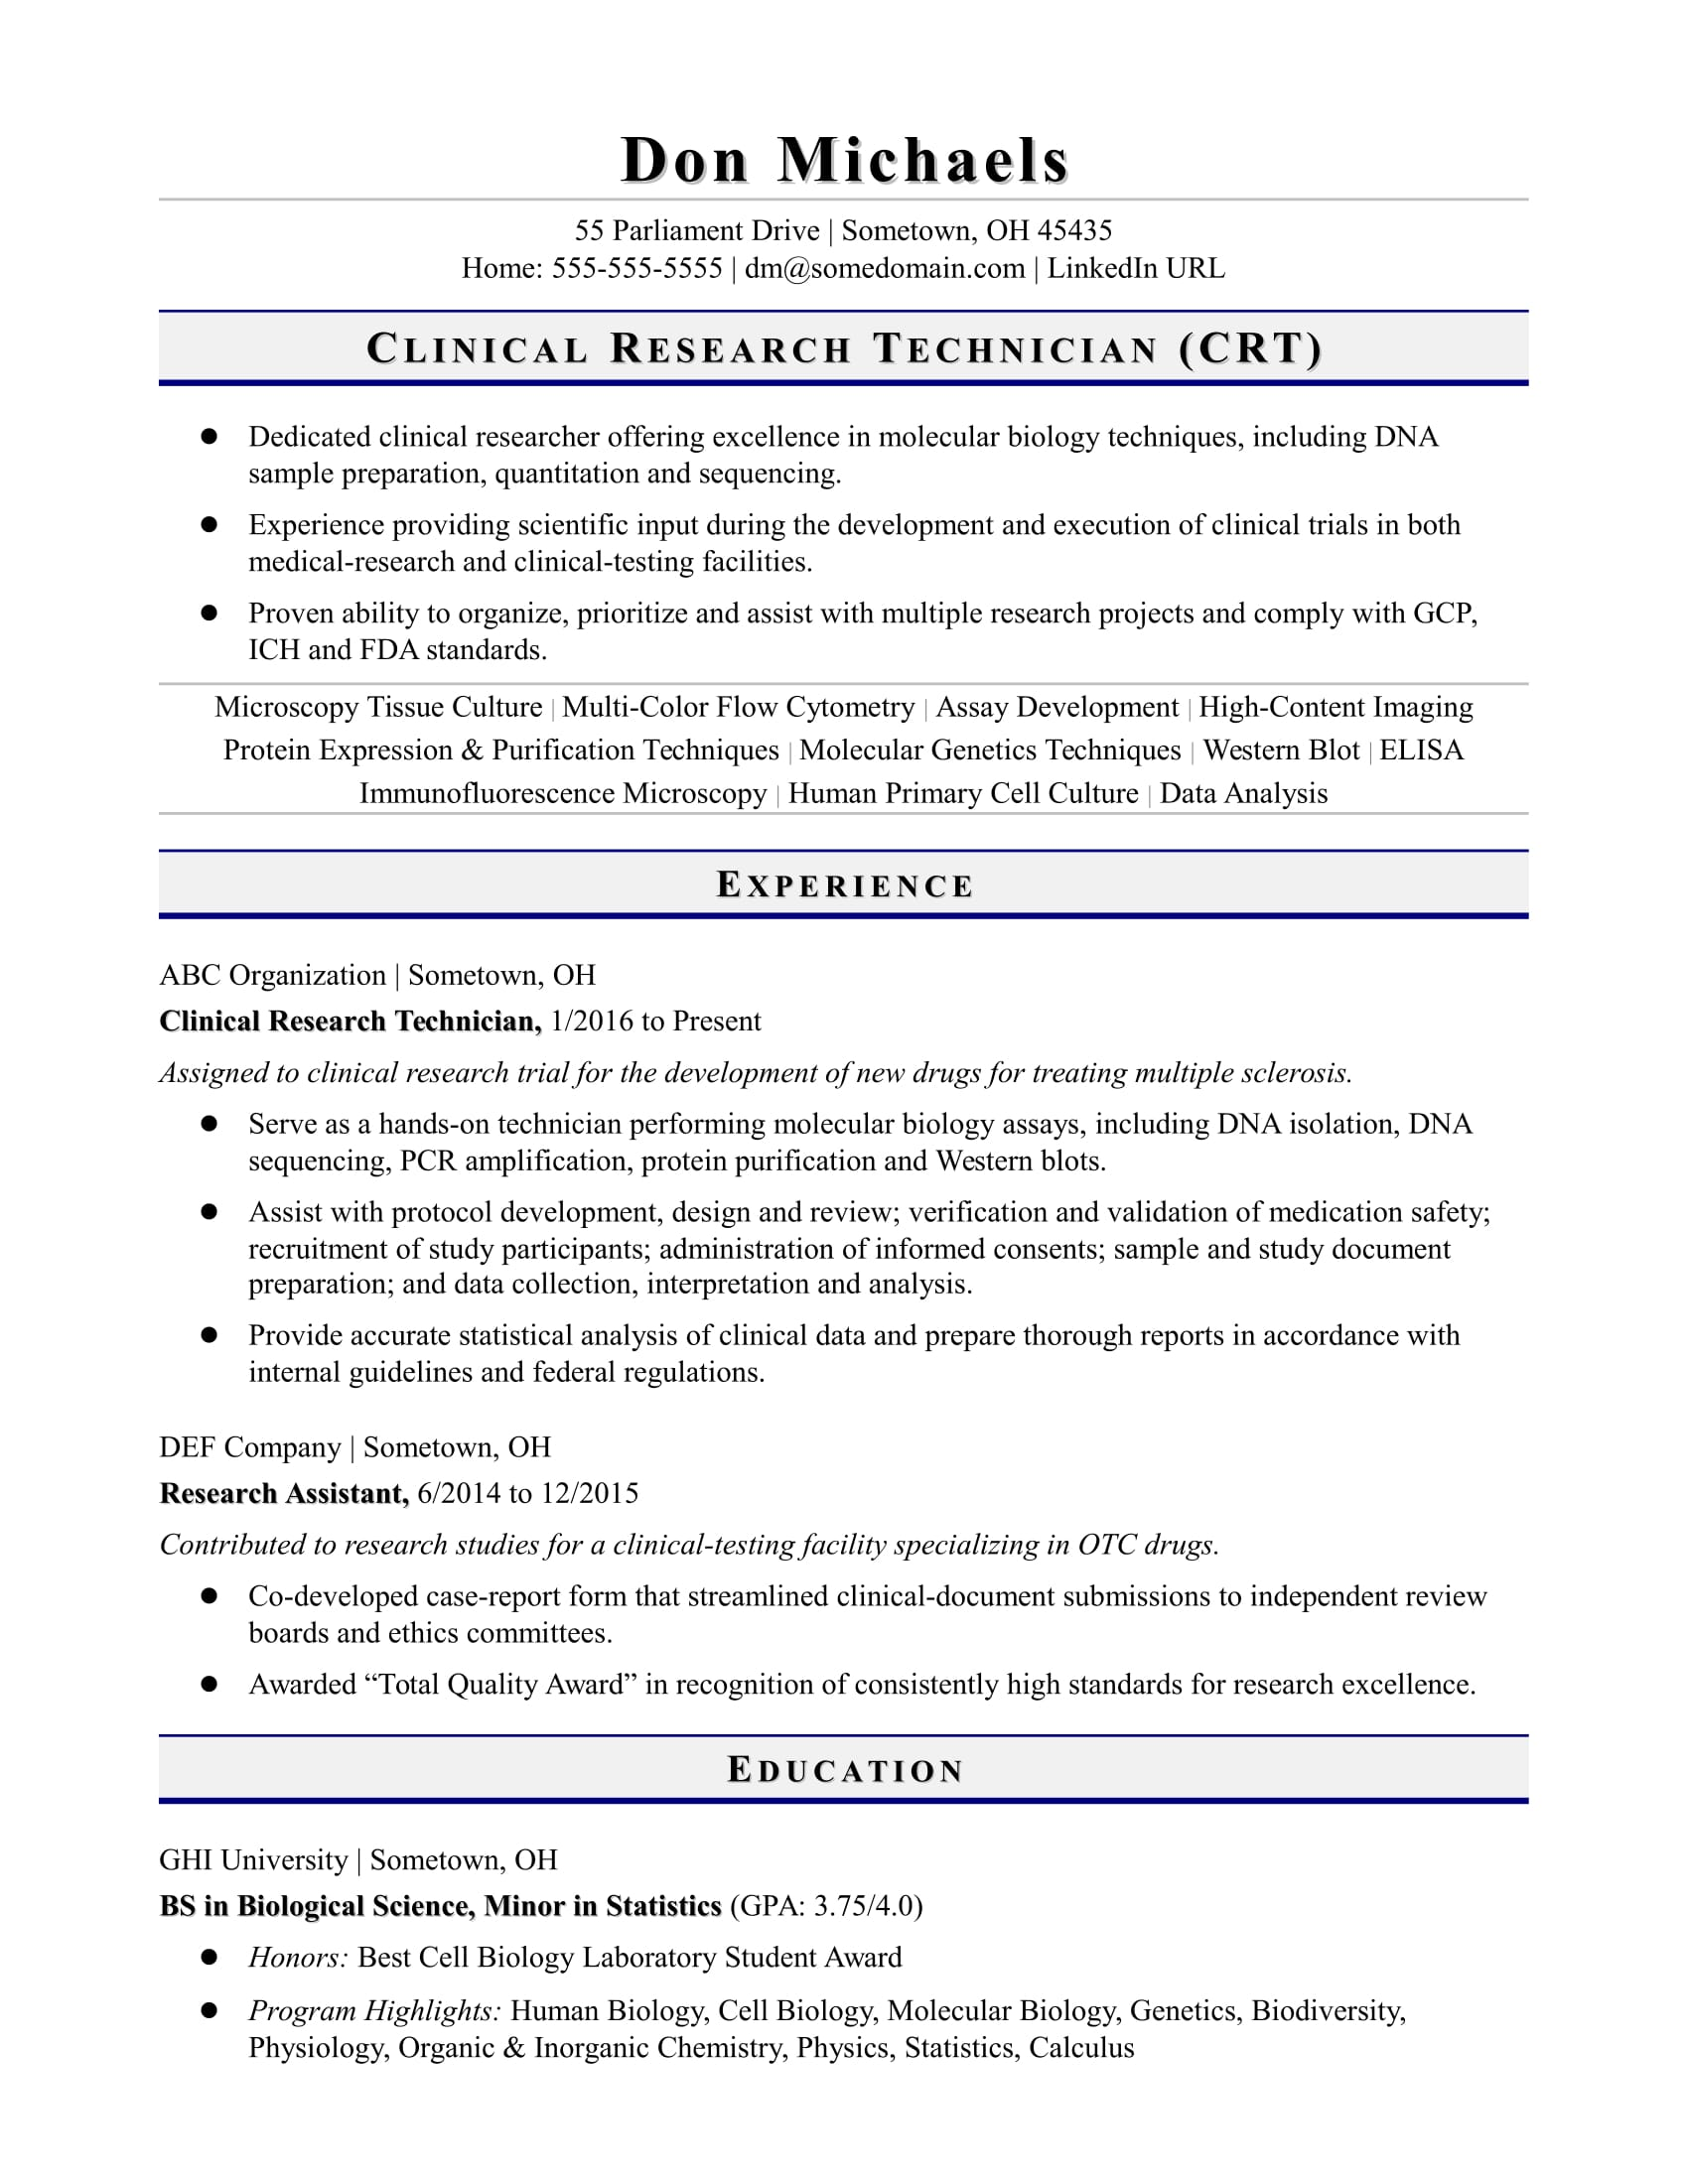 sample resume for an entry level research technician - Scientific Resume Examples